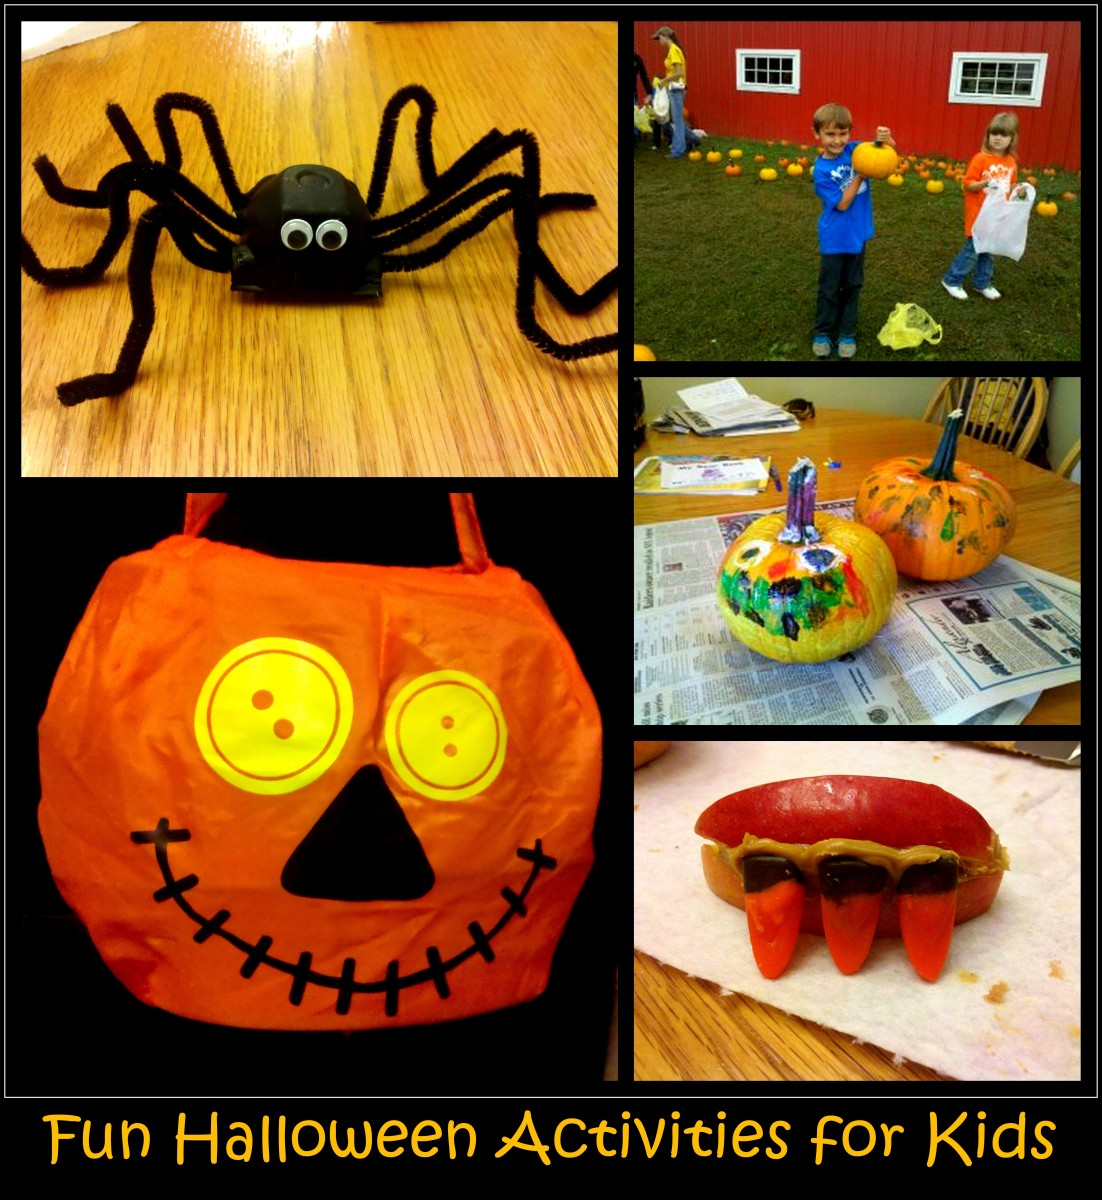 Celebrate Halloween with these fun activities for kids.